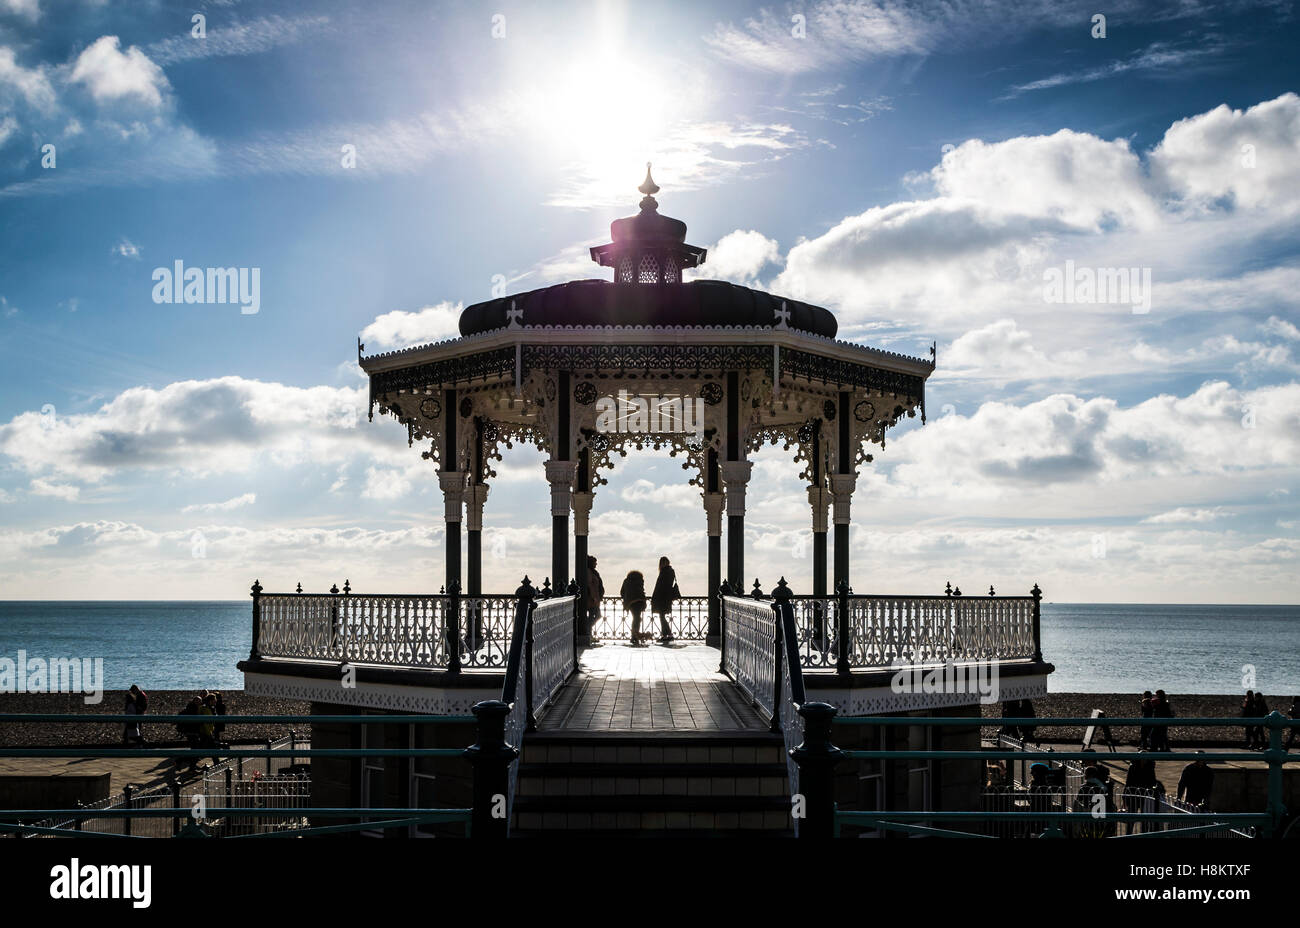 People silhouetted on The Bandstand, Hove, on the seafront. The bandstand is a fine example of Victorian architecture. - Stock Image